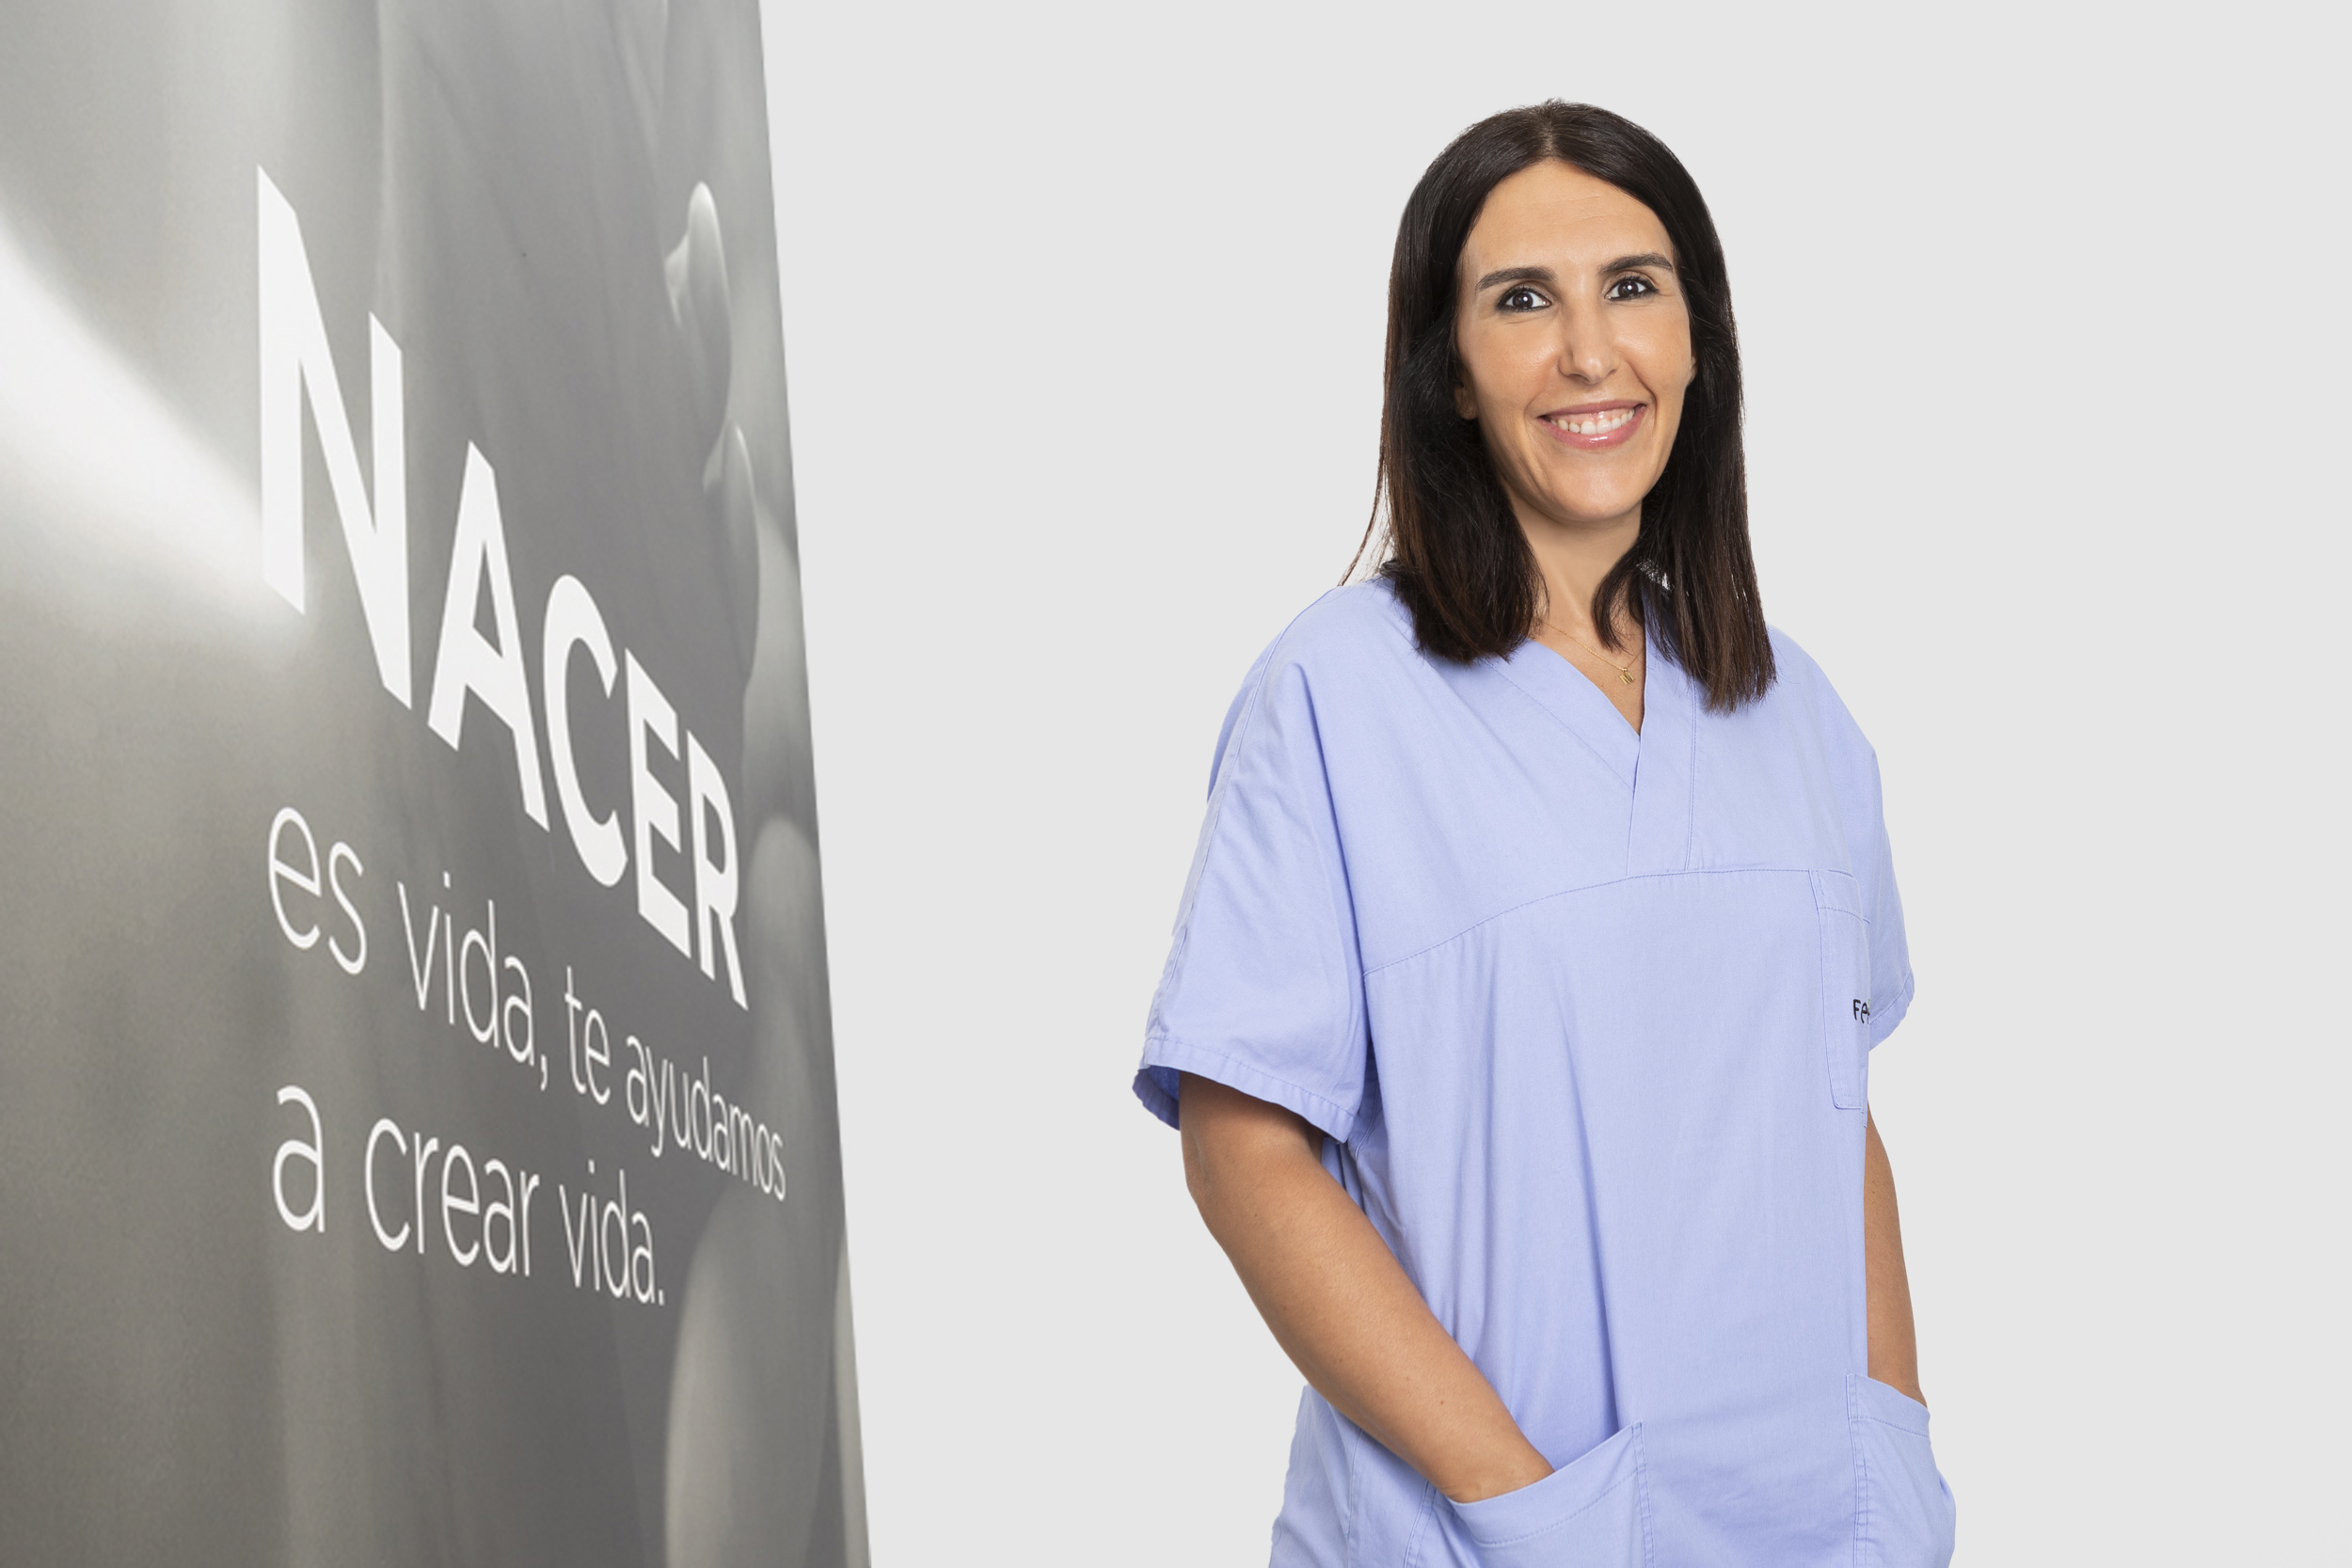 Dr Ana Robles